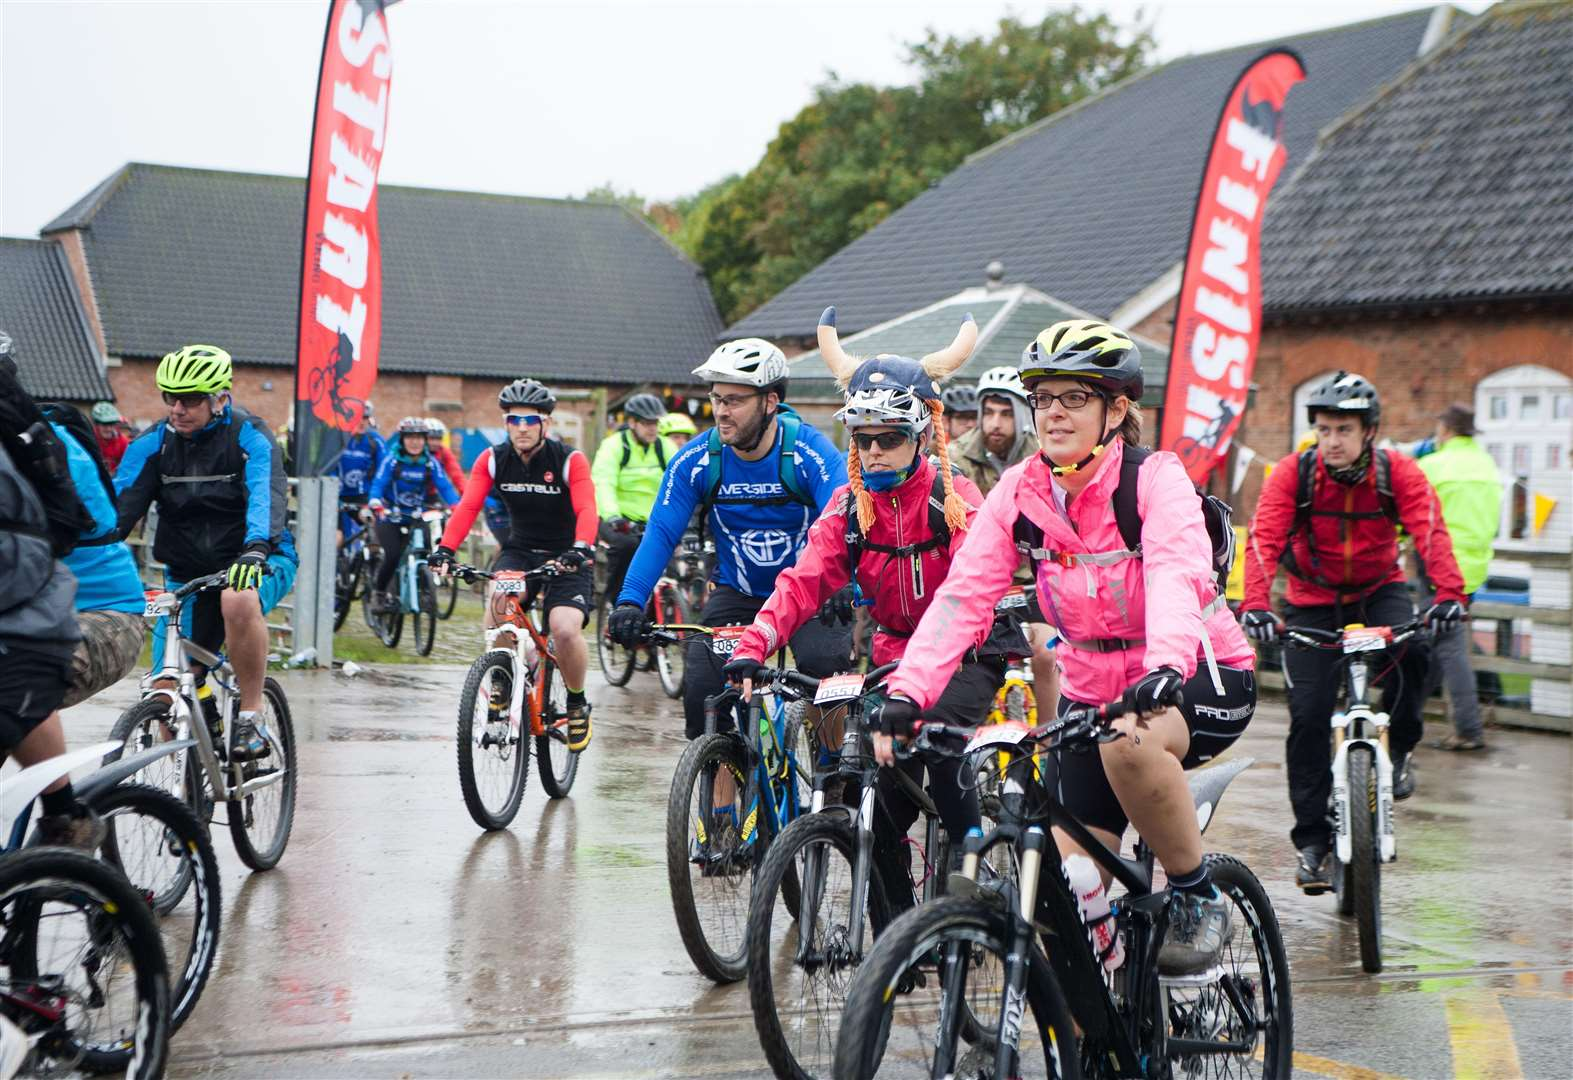 More than 1,000 cyclists to take on new route in Viking Challenge